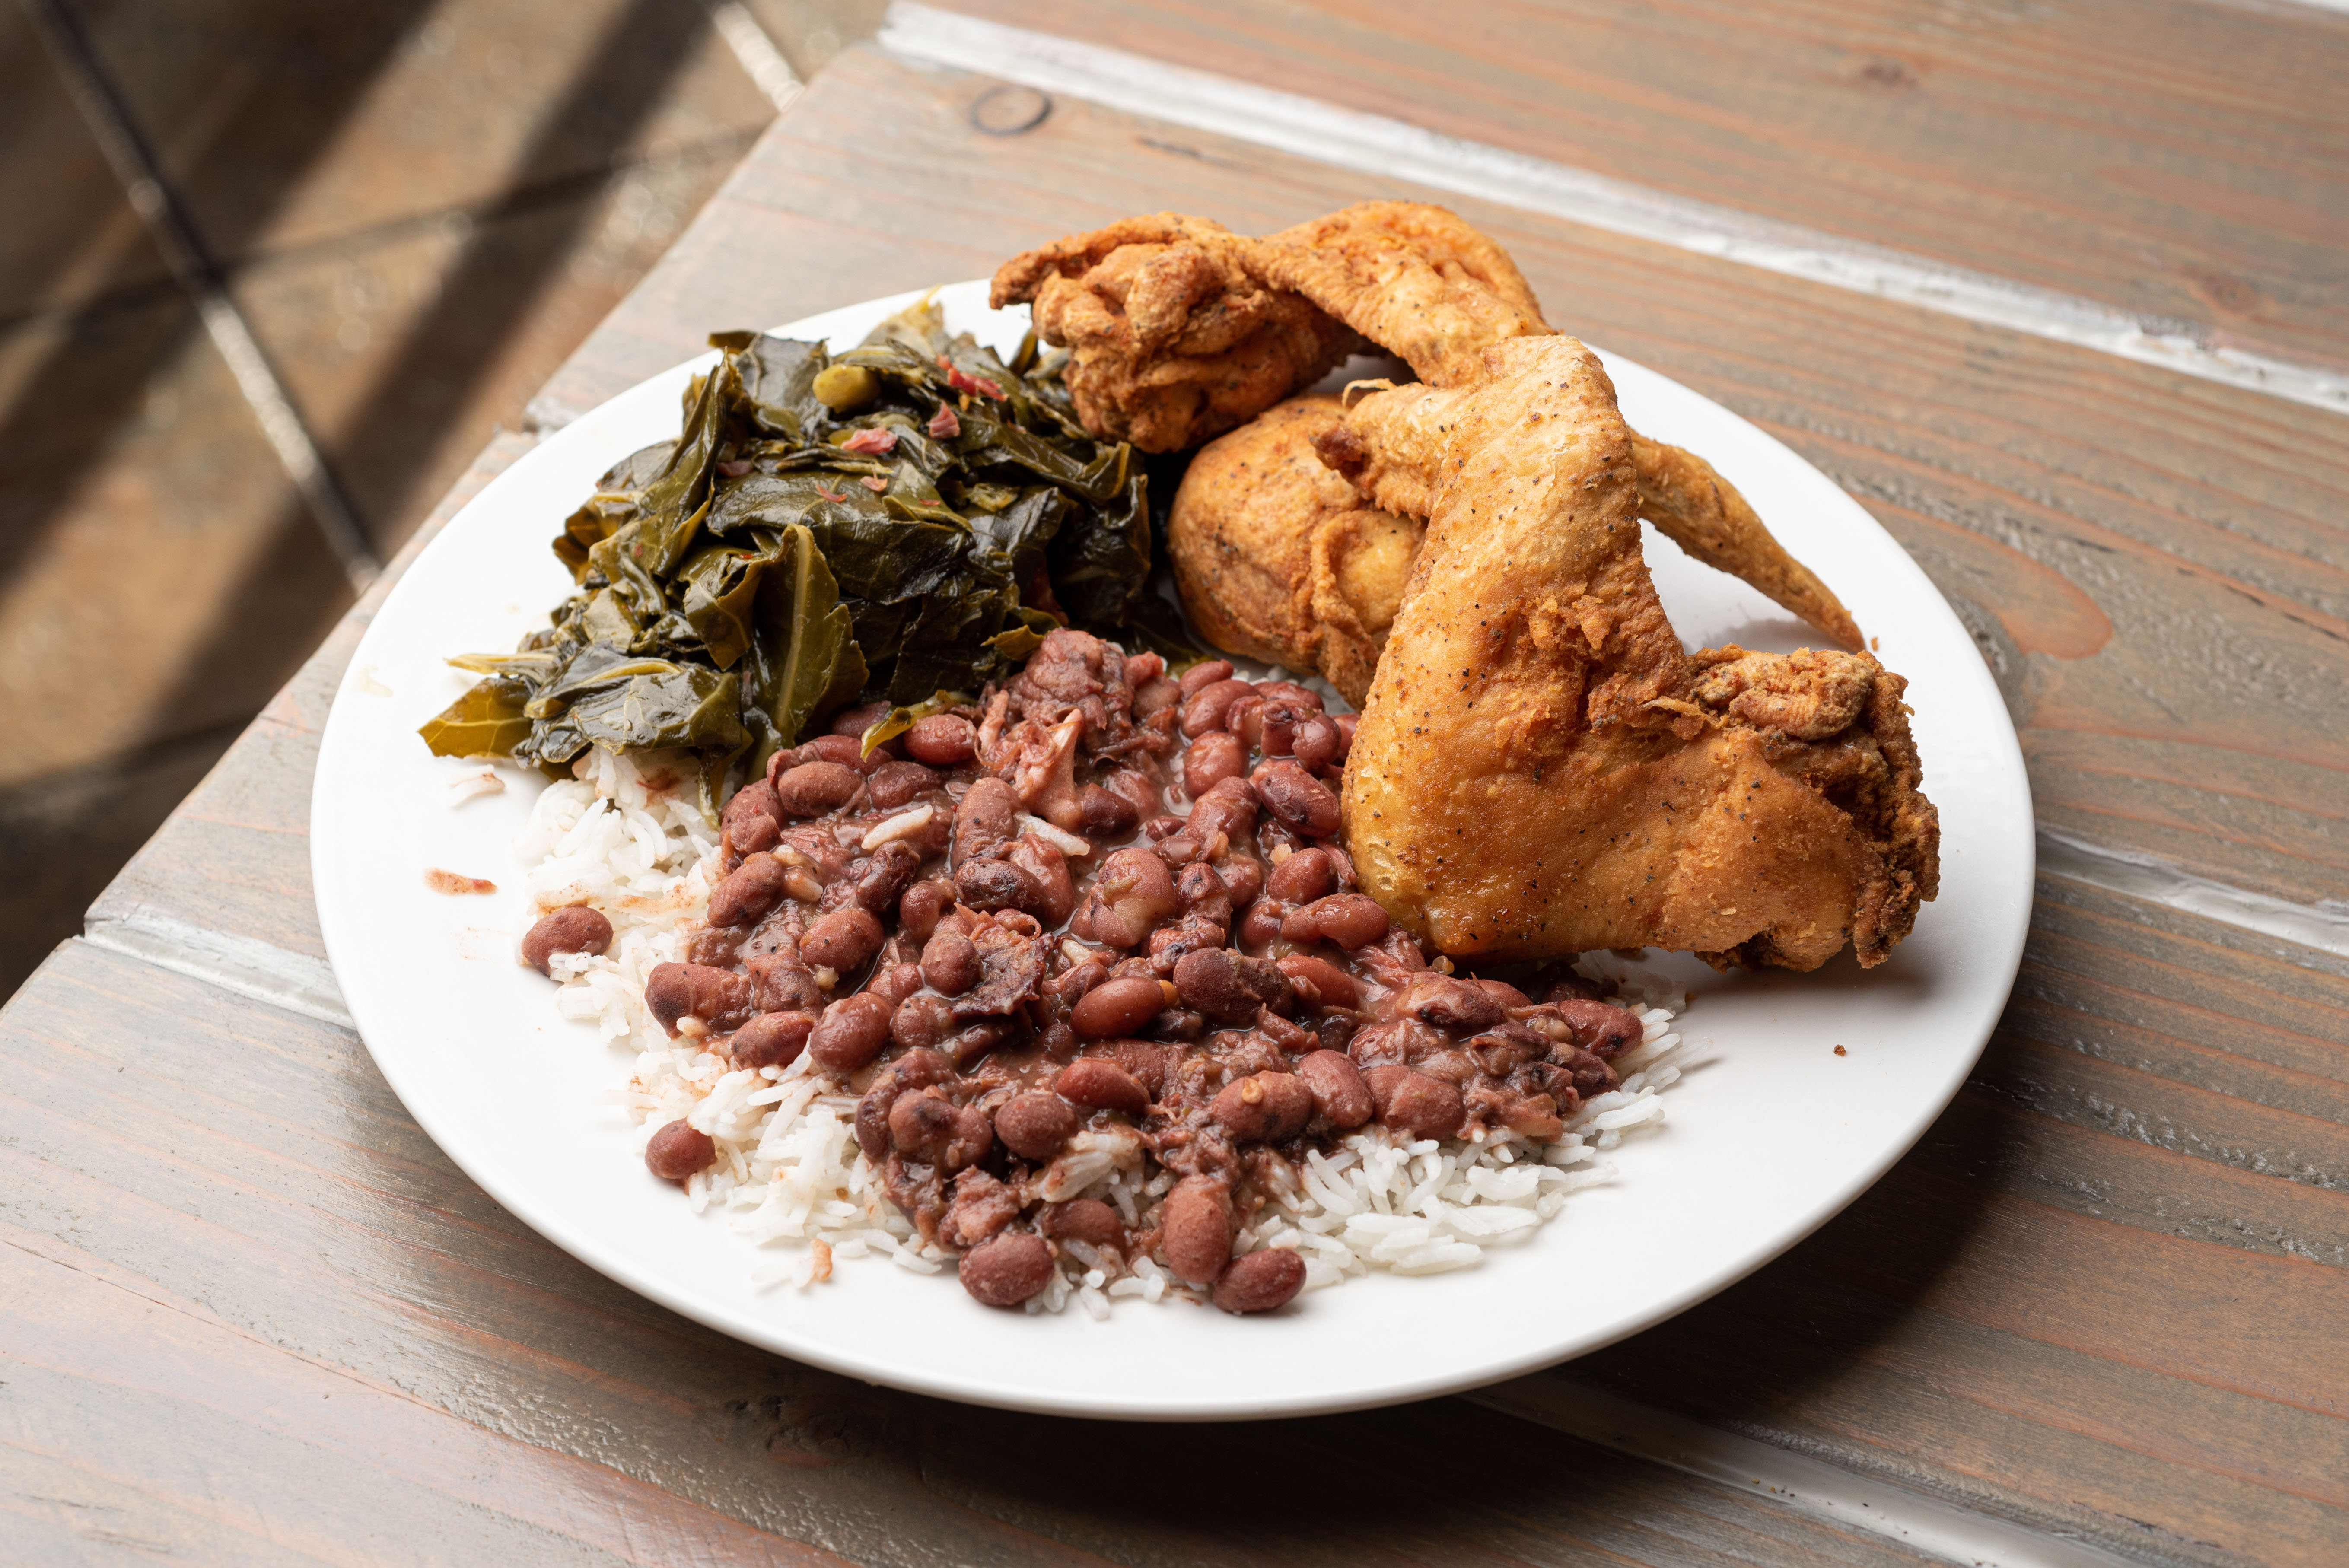 A plate of fried chicken with collard greens and red beans atop rice.